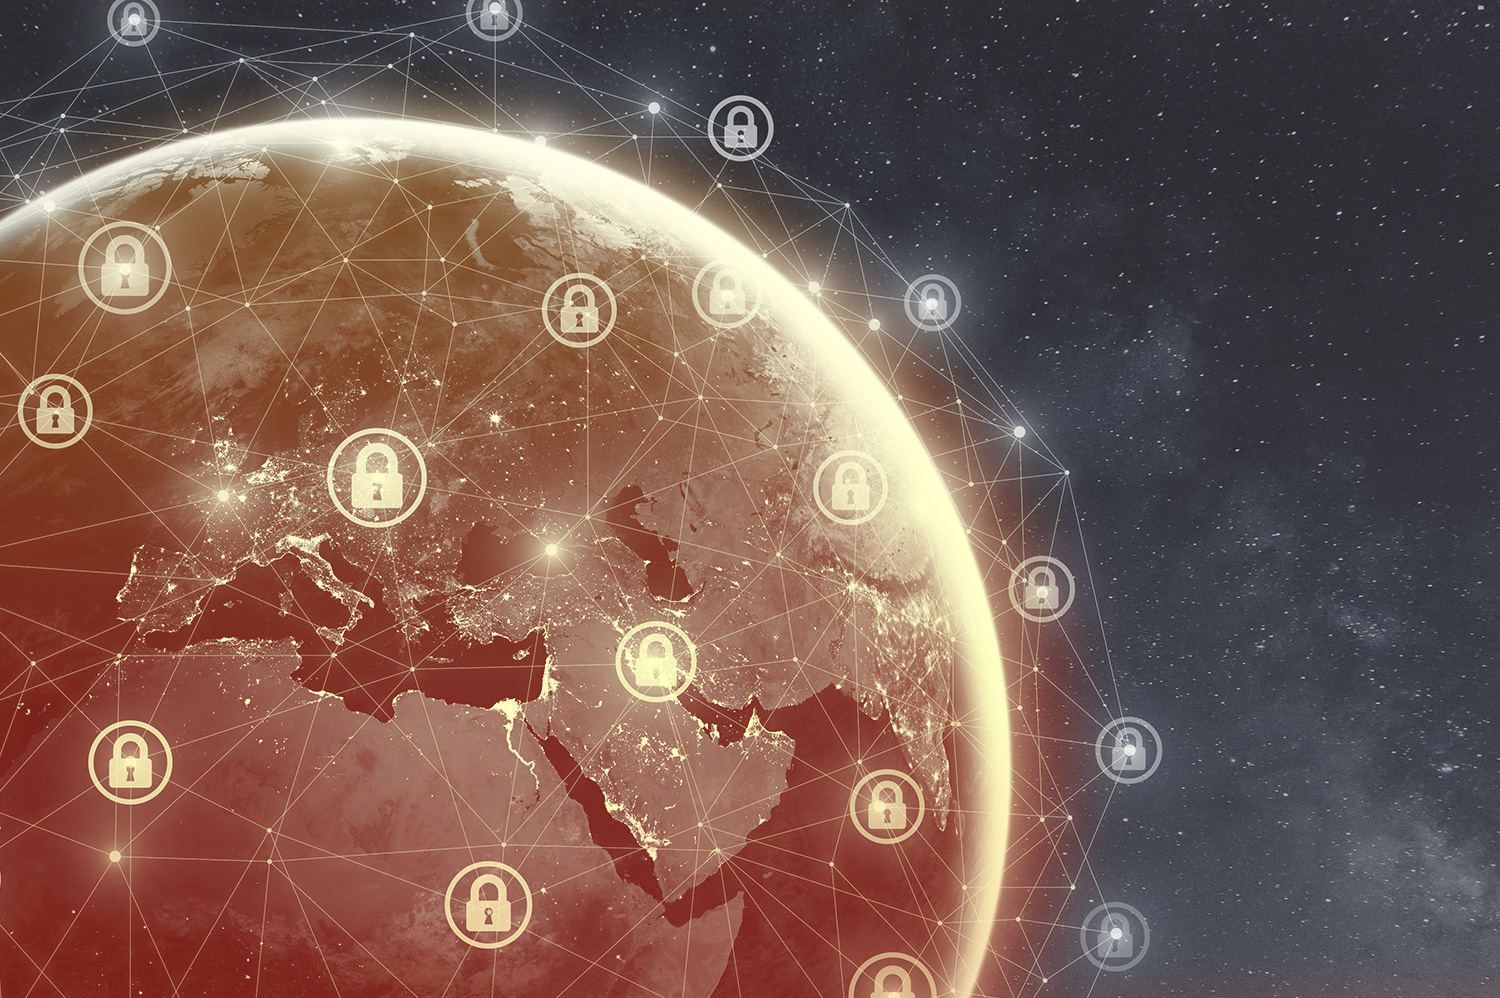 Locks placed in network around globe